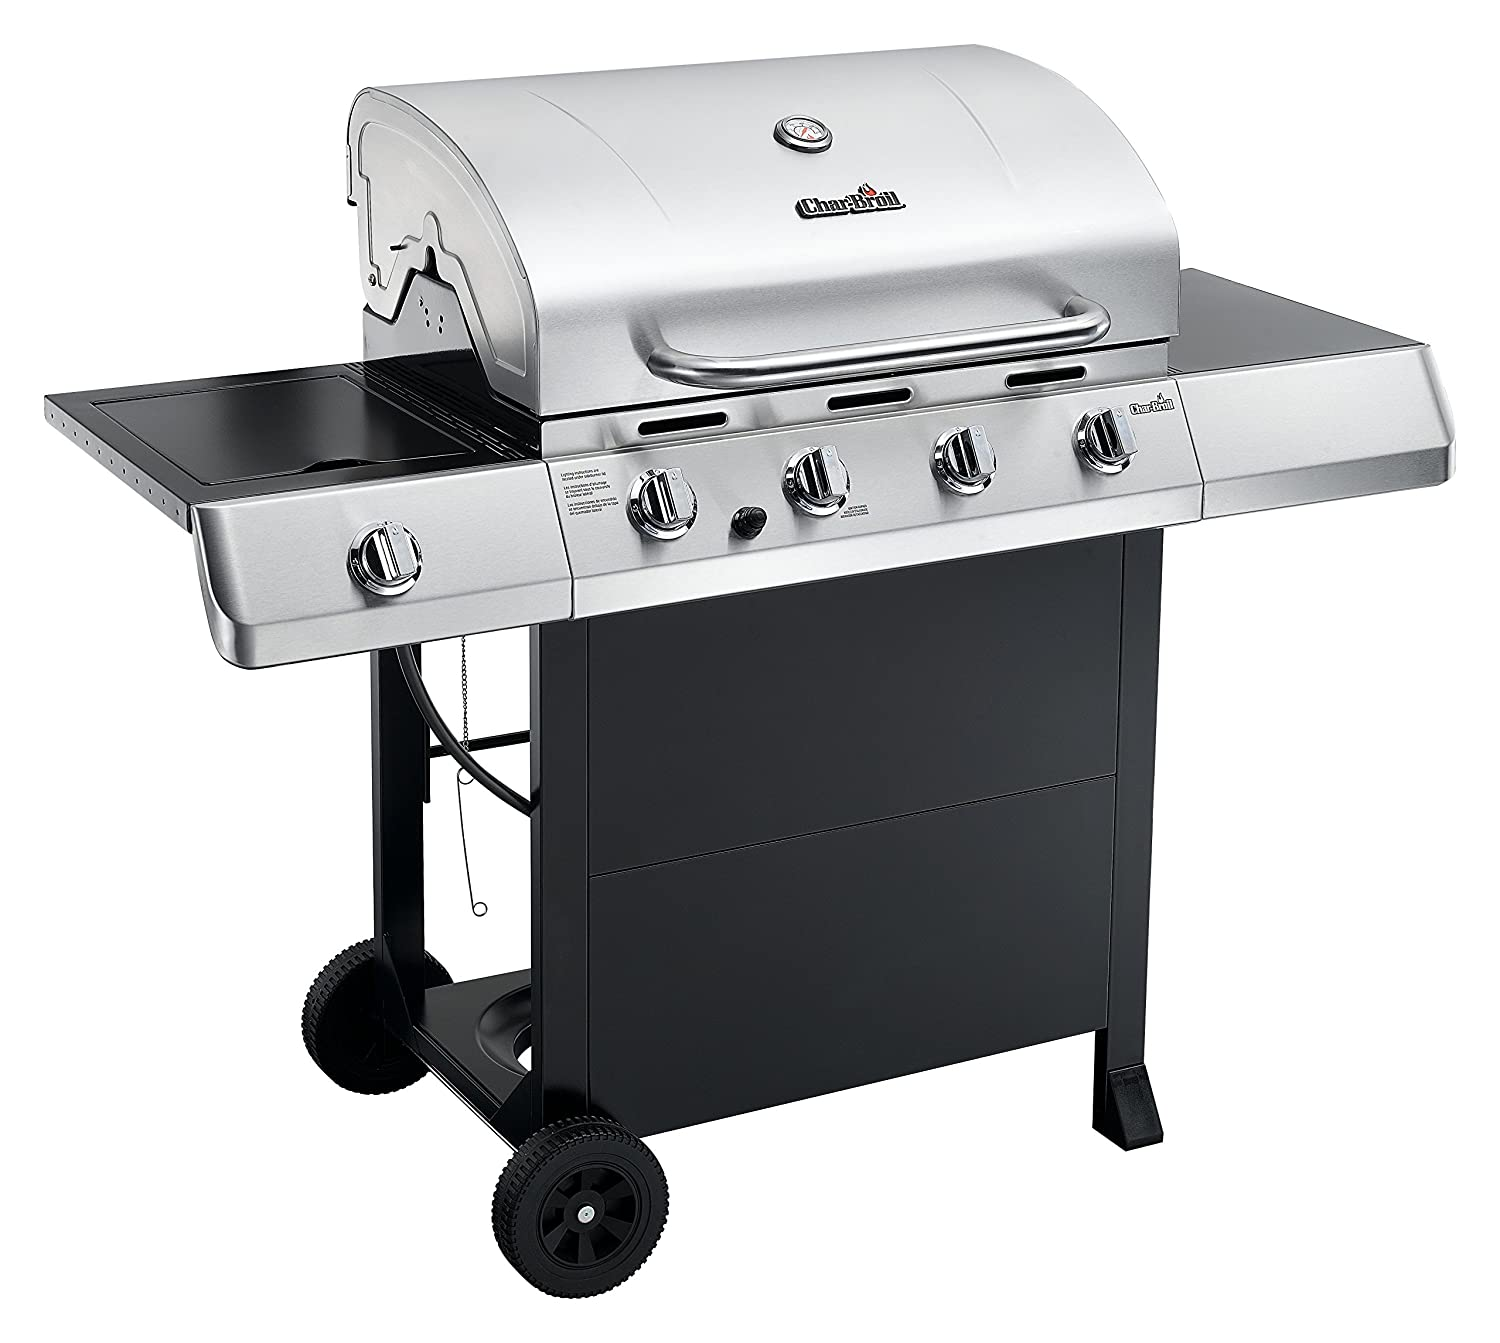 Amazon CHARBROIL Classic 4 Burner Gas Grill with